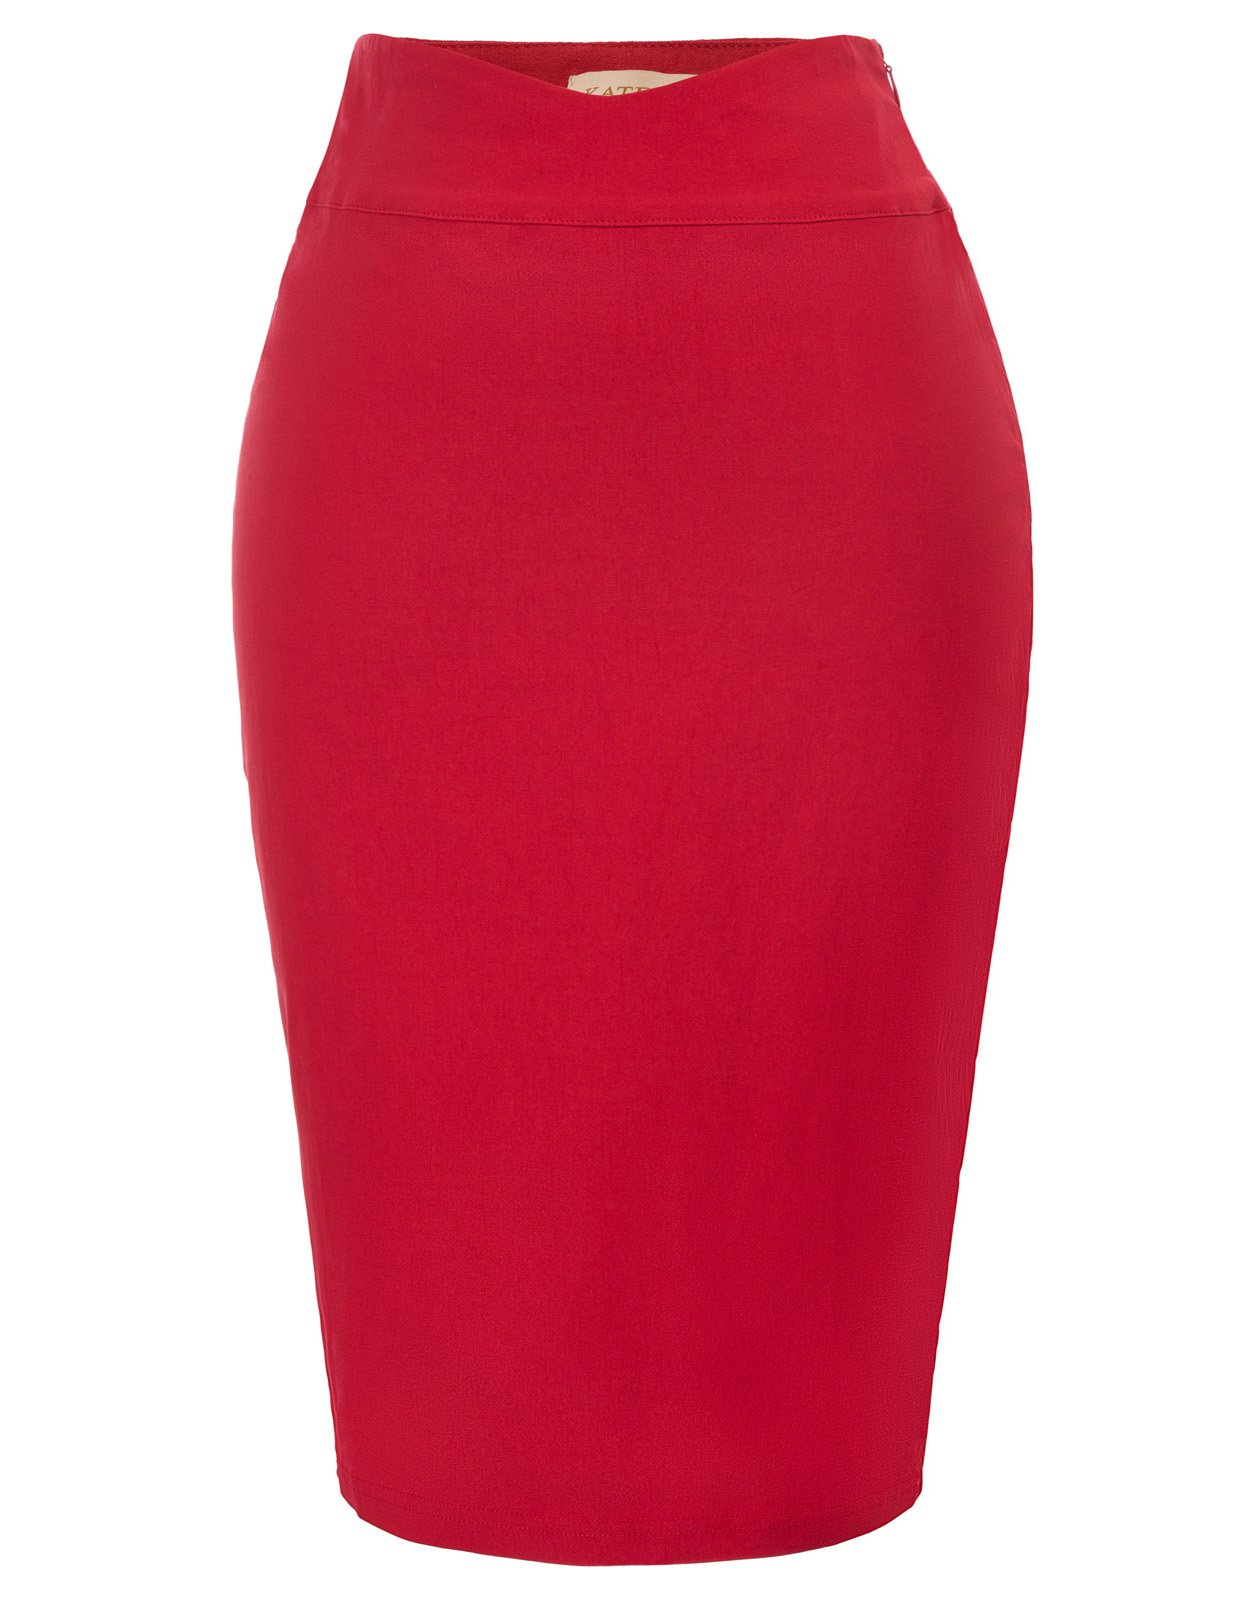 Kate Kasin Women's Solid Wear to Work Bodycon Midi Skirts Business Office Size L Red KK926-2